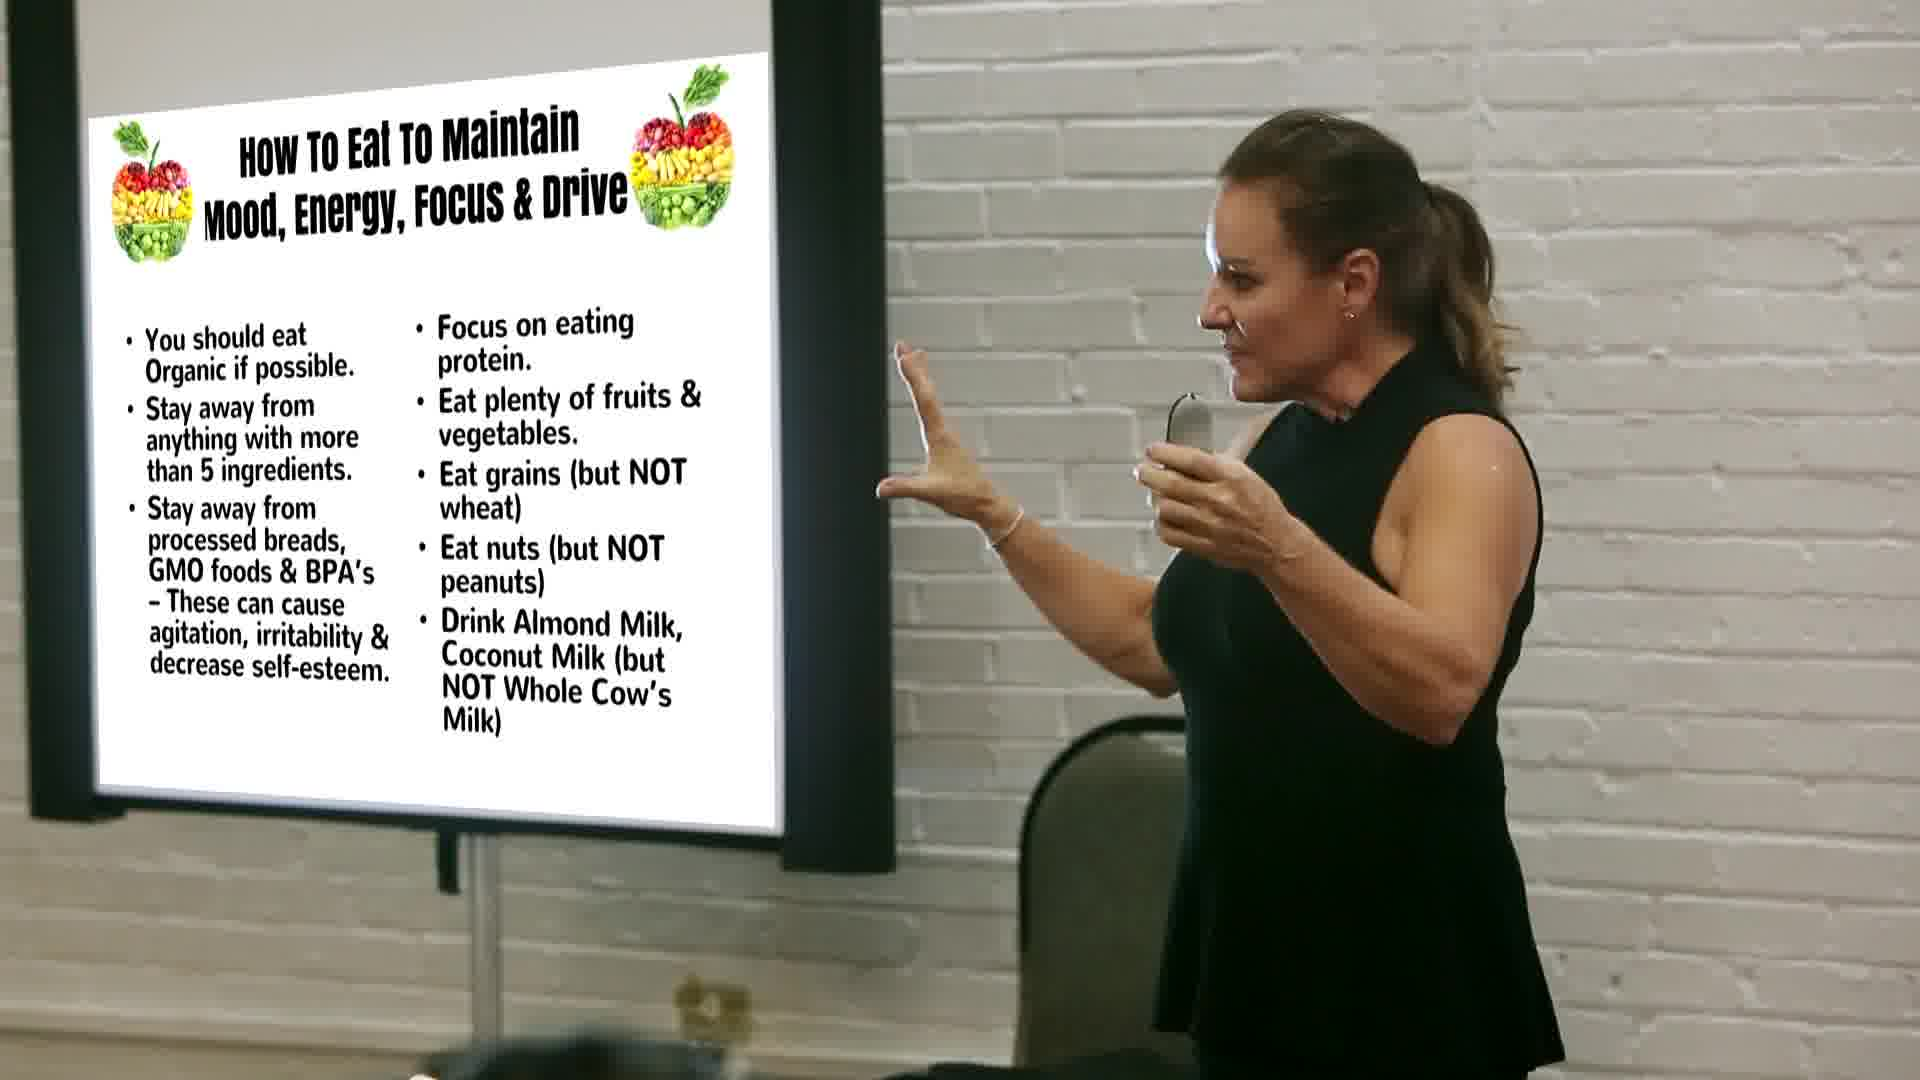 Basic nutrition information for increasing energy and sense of well being